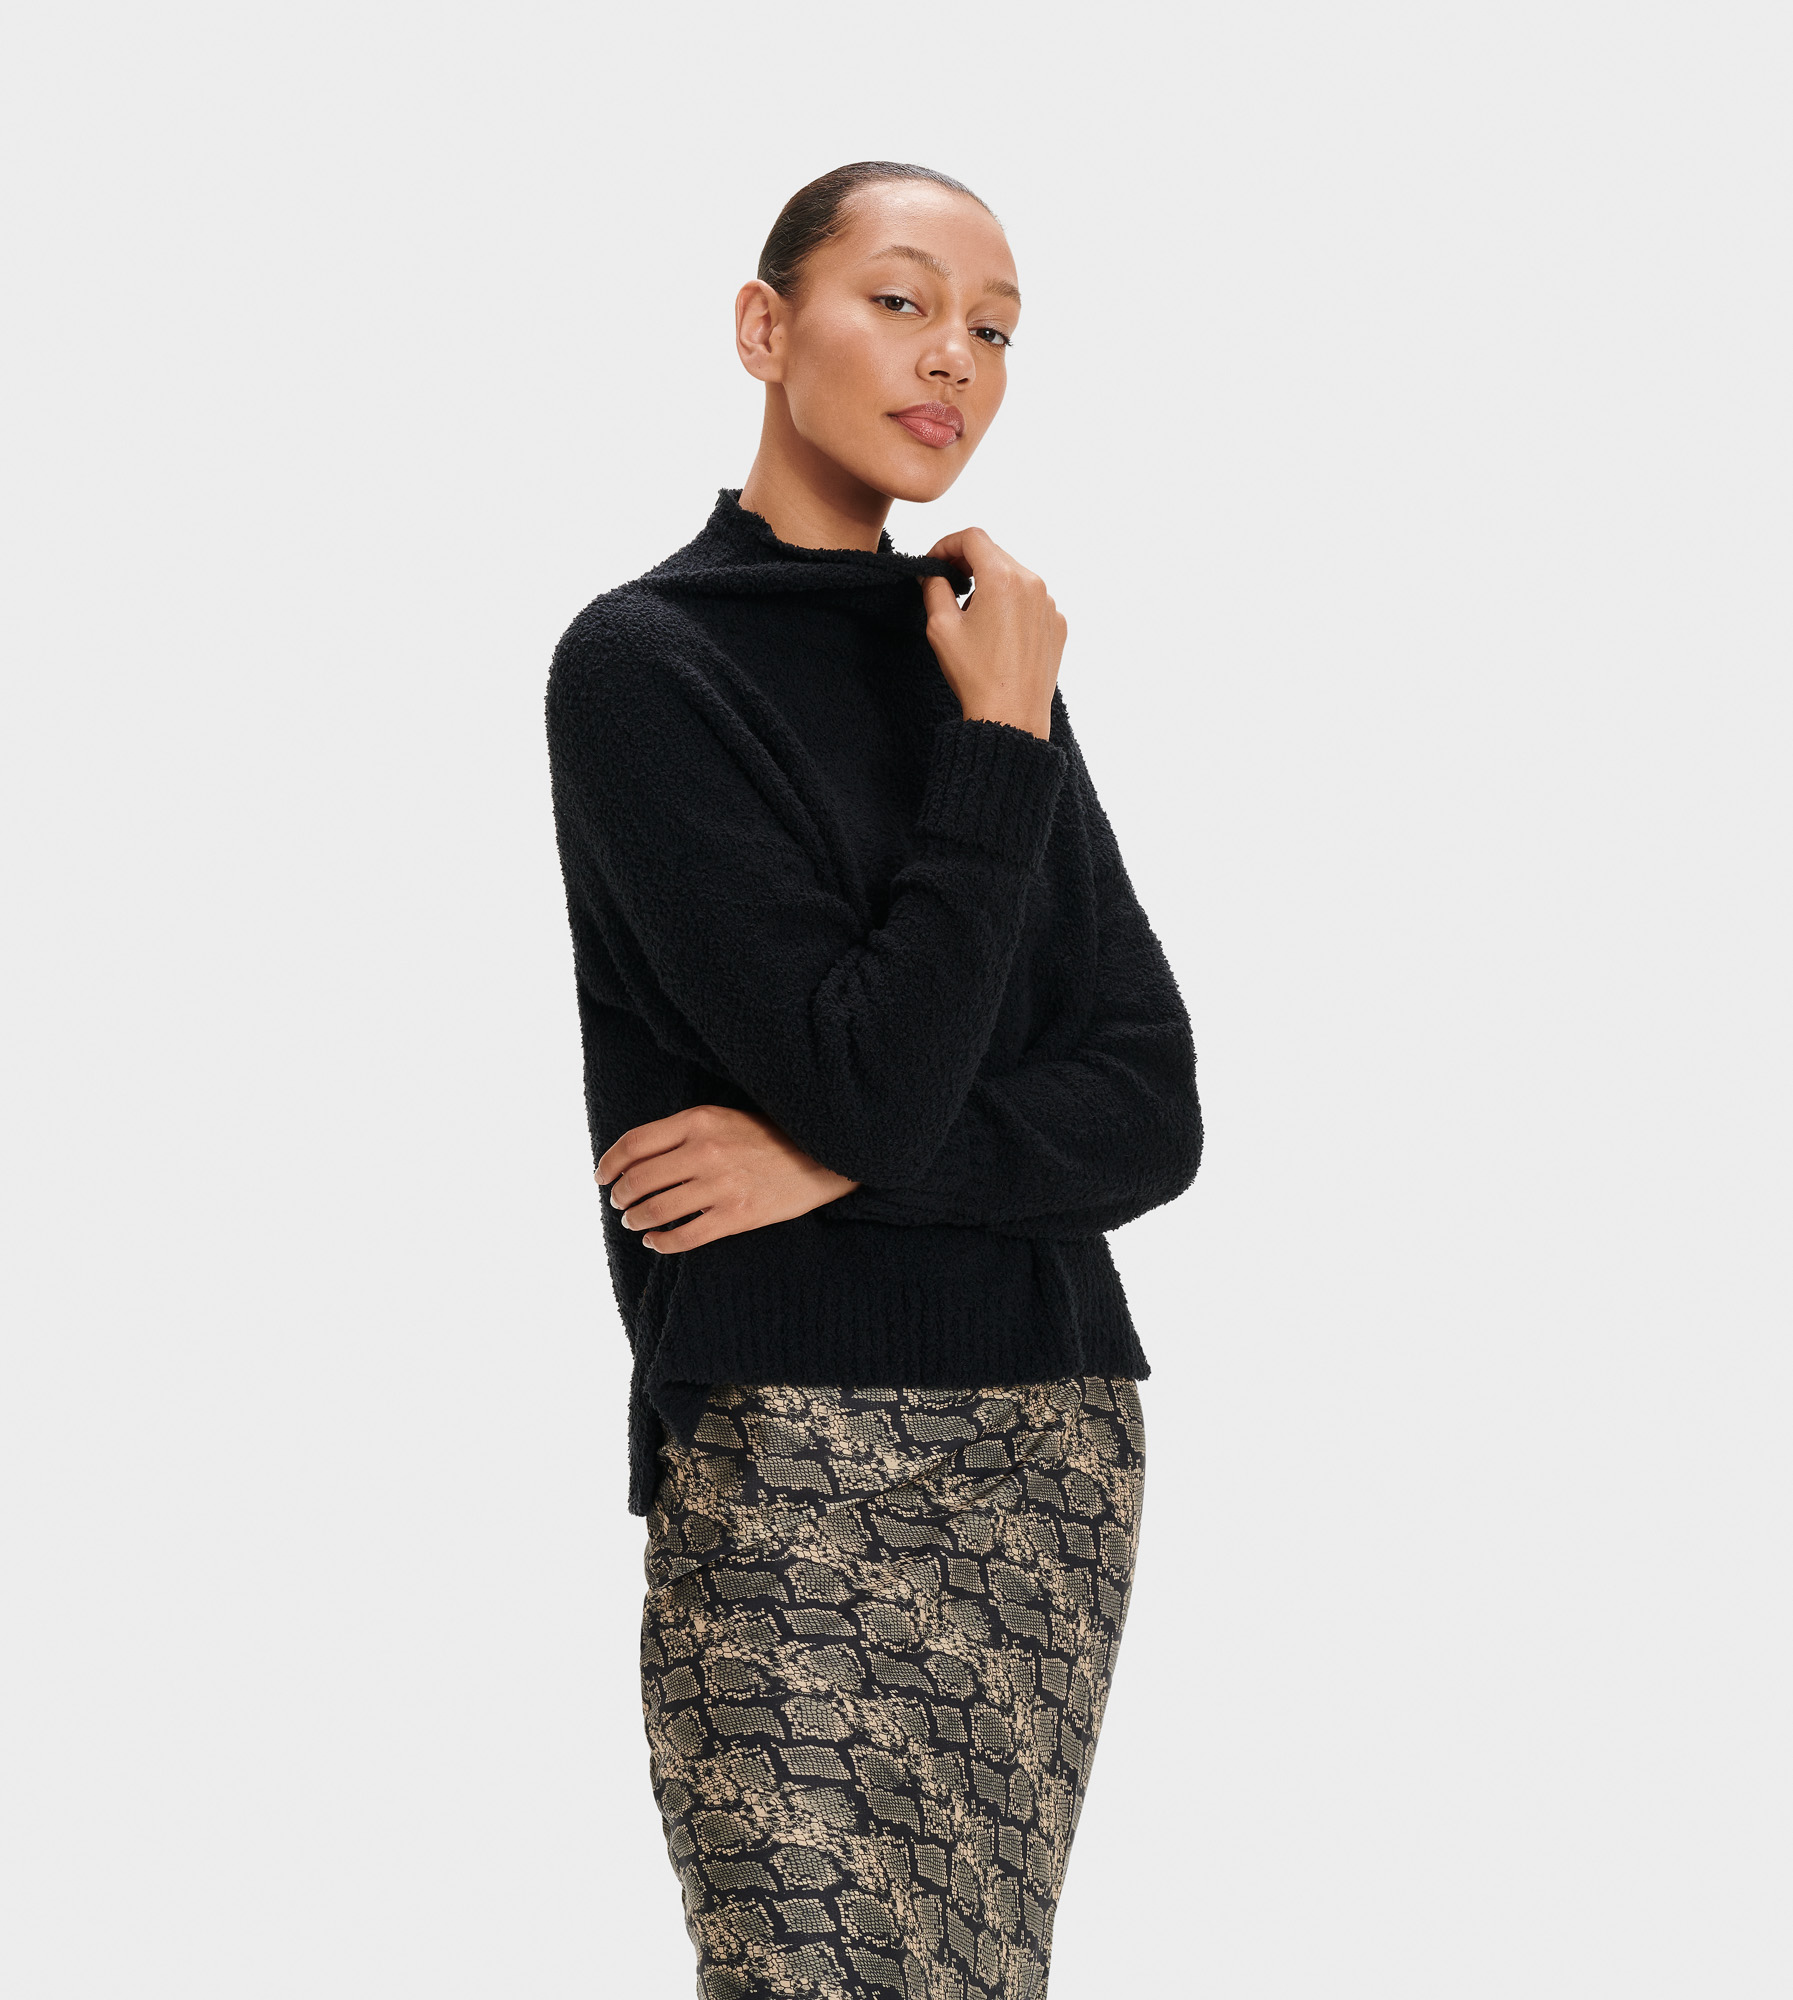 UGG Women's Sage Sweater Polyester Tops in Black, Size L A cozy turtleneck with an understated aesthetic, our Sage sweater is a staple piece for any winter wardrobe. Pair it with elevated skirts and trousers for a night on the town, or wear around the house with your favorite sweatpants. 78% Polyester, 22% Nylon. Drop shoulder. 26  center back length. UGG Women's Sage Sweater Polyester Tops in Black, Size L